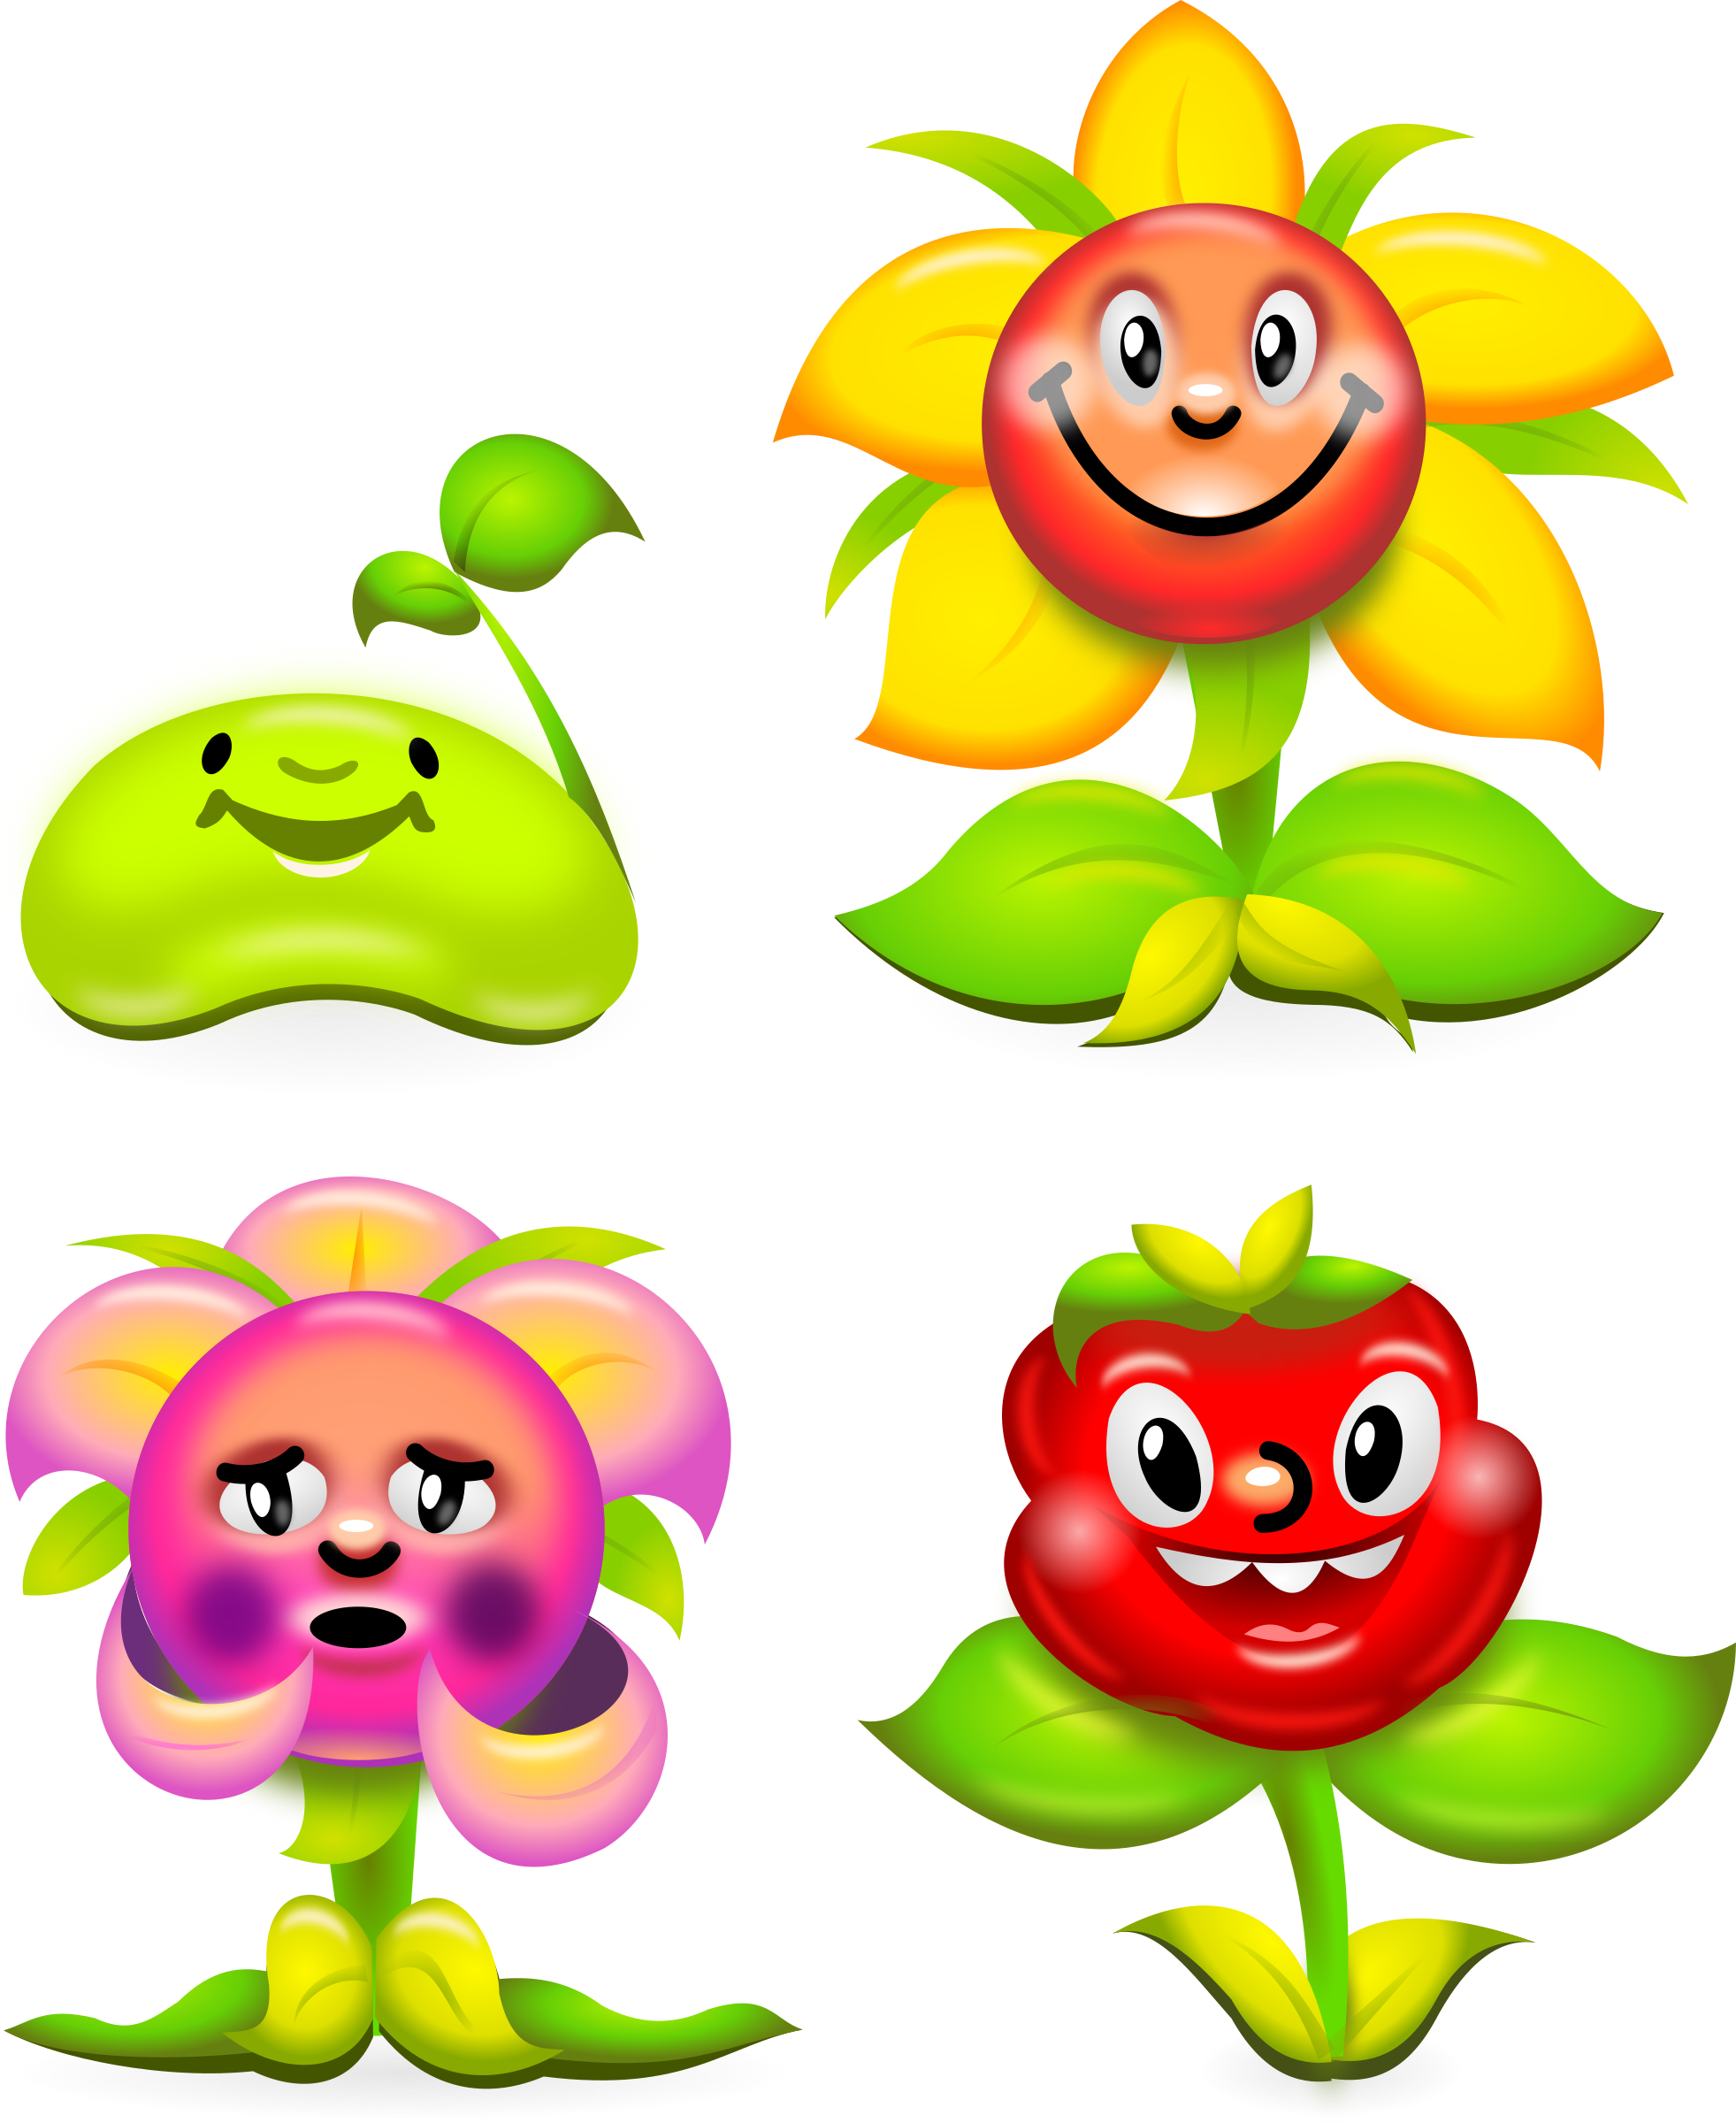 Game clipart summer game. Flower characters superb production